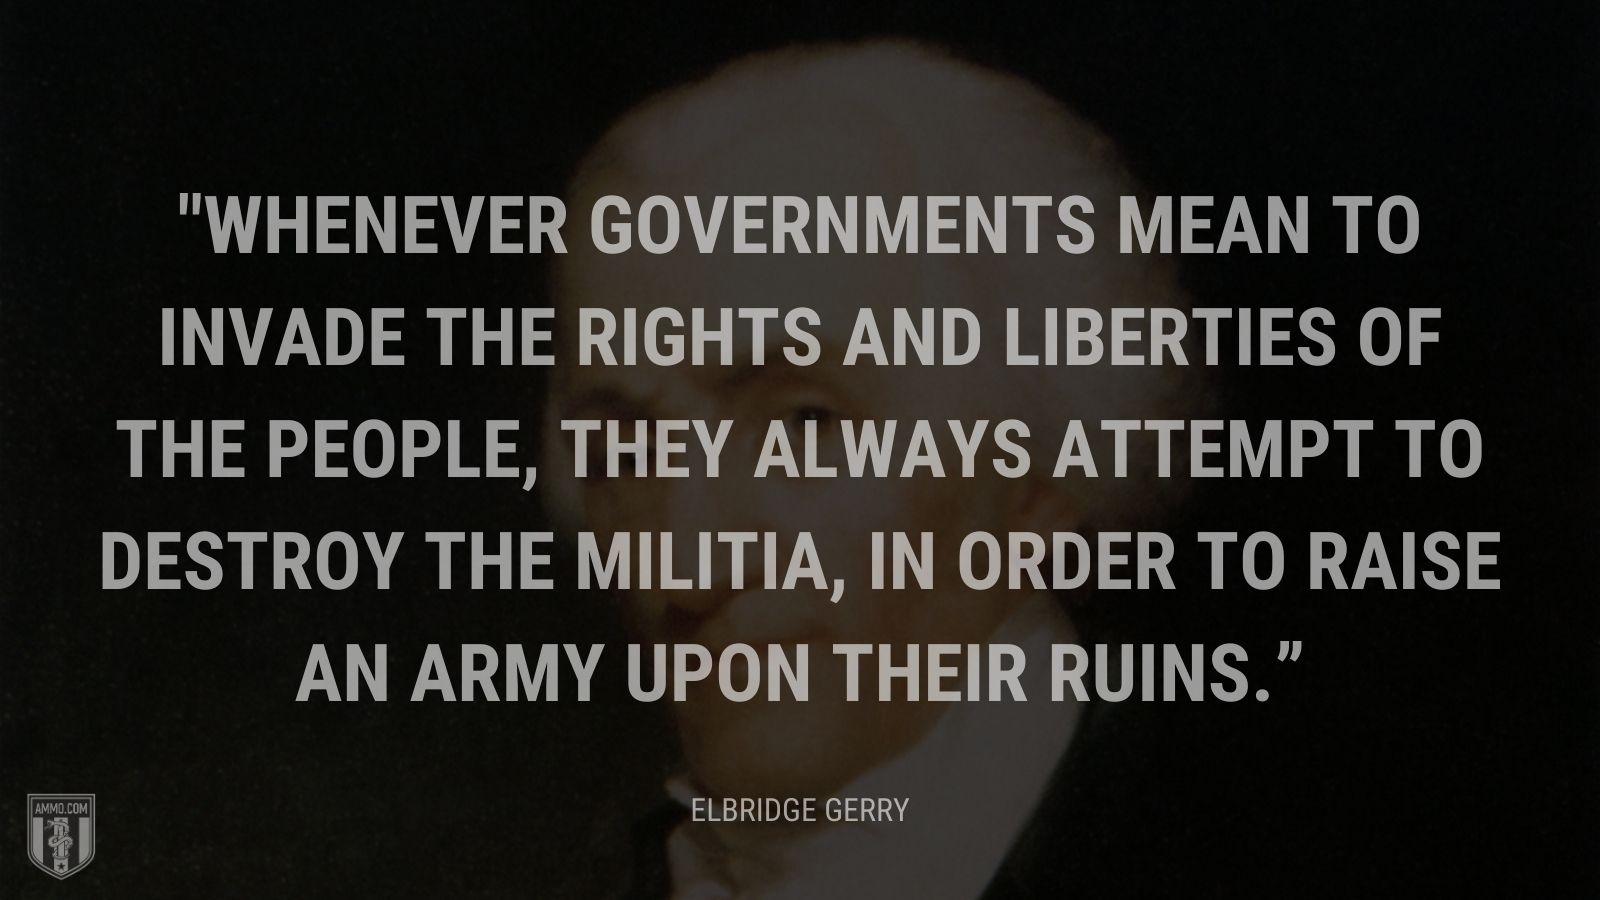 """Whenever governments mean to invade the rights and liberties of the people, they always attempt to destroy the militia, in order to raise an army upon their ruins."" - Representative Elbridge Gerry"